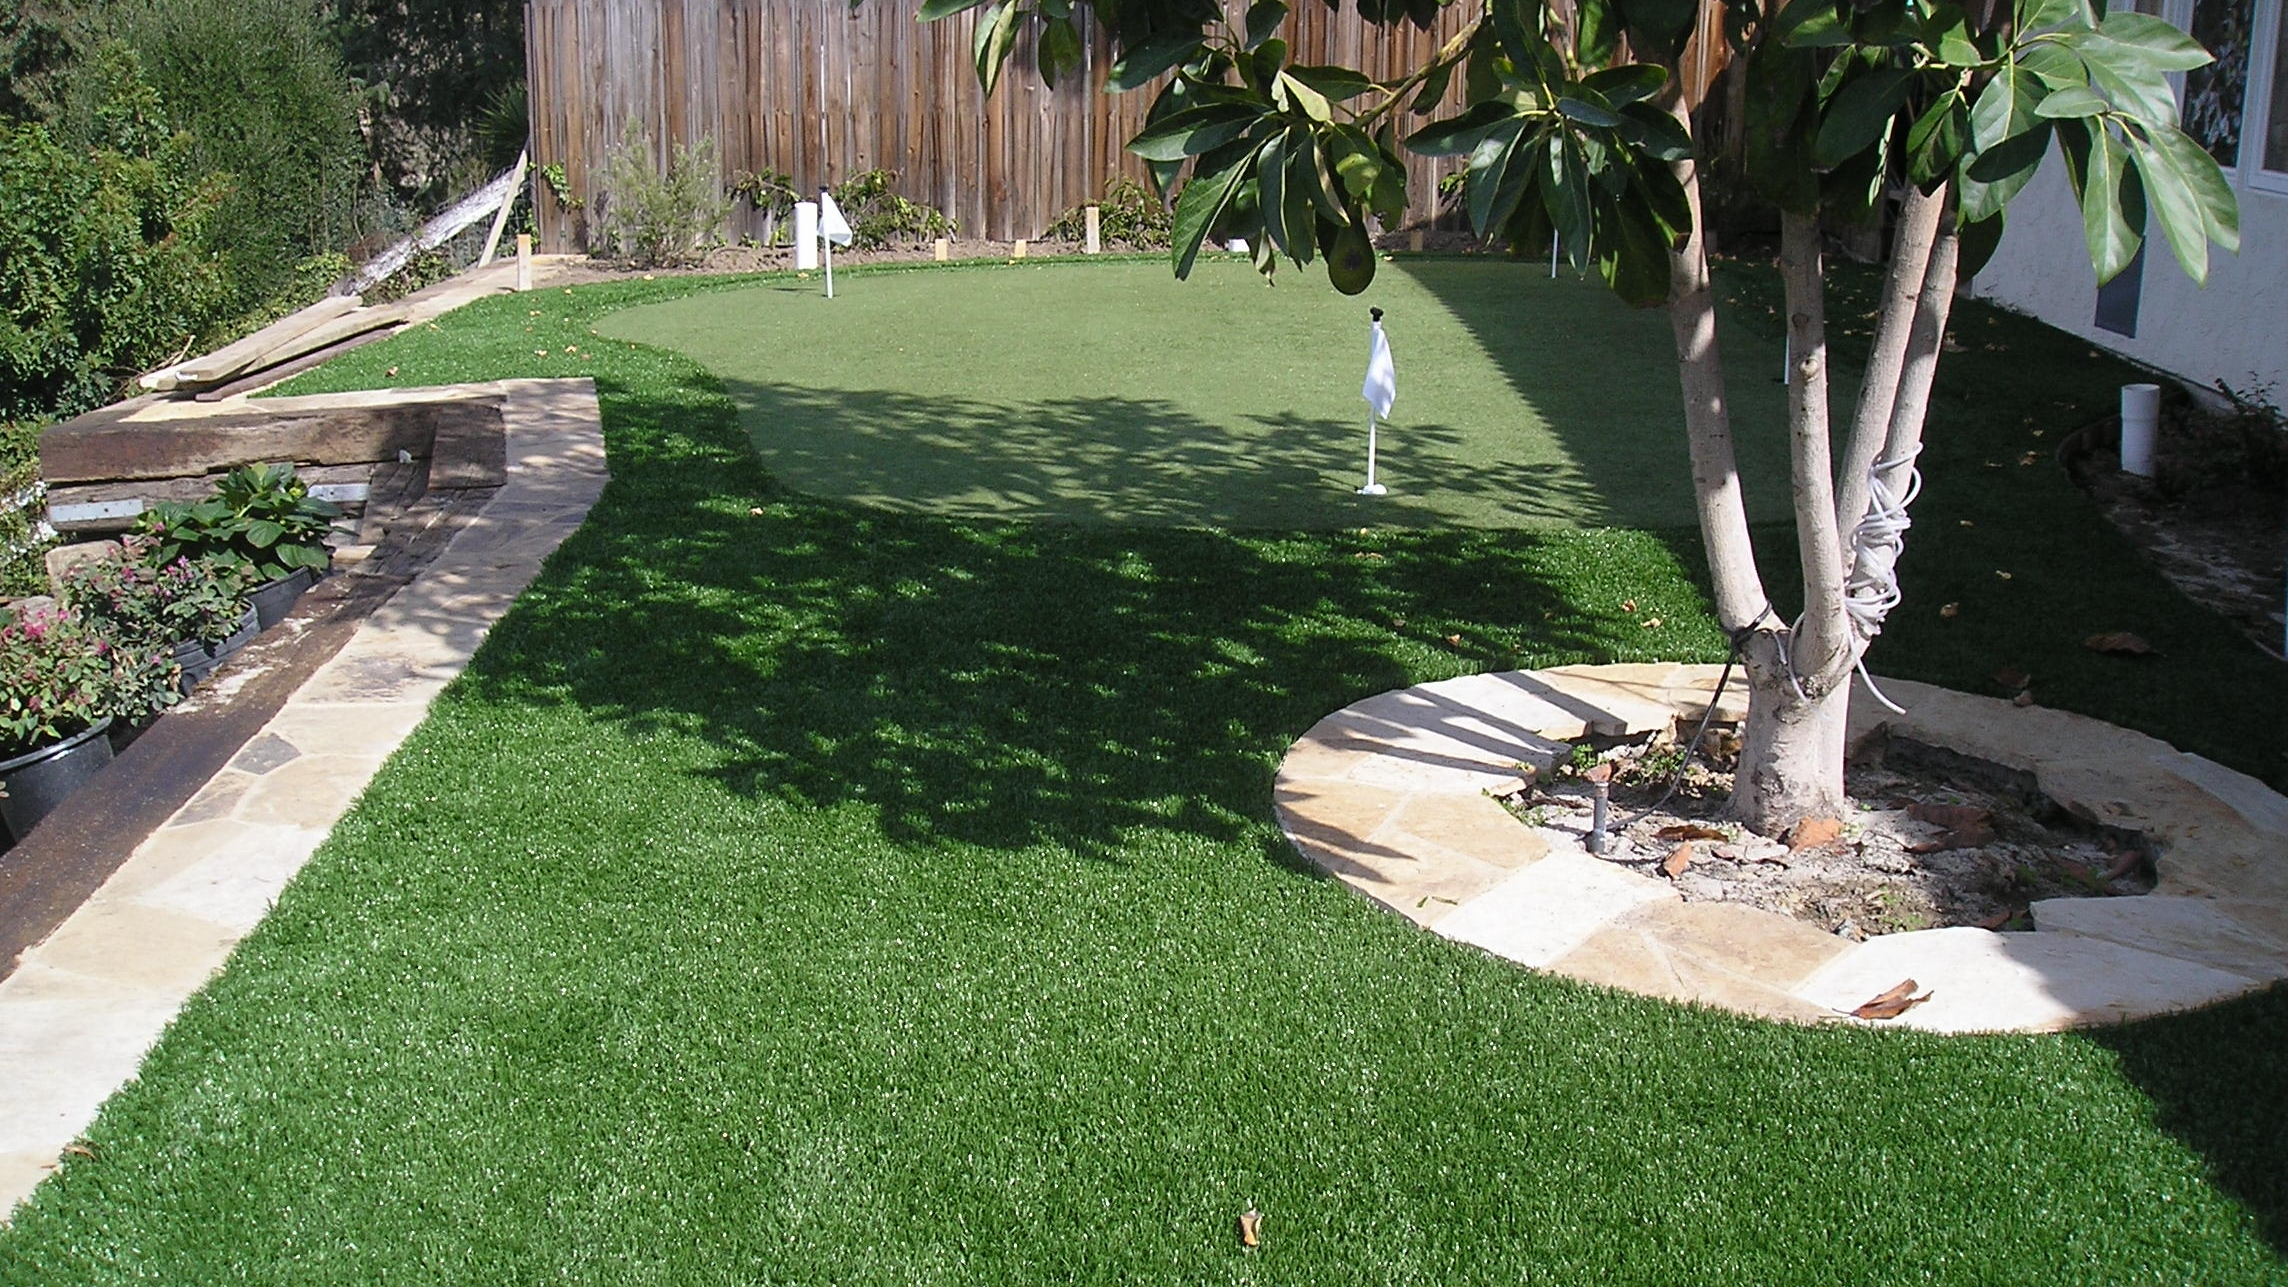 S Blade 50 artificial turf for yards,artificial grass for yards,fake grass for yards,fake green grass,green grass carpet,backyard turf,turf backyard,fake grass for backyard,fake grass backyard,artificial grass backyard